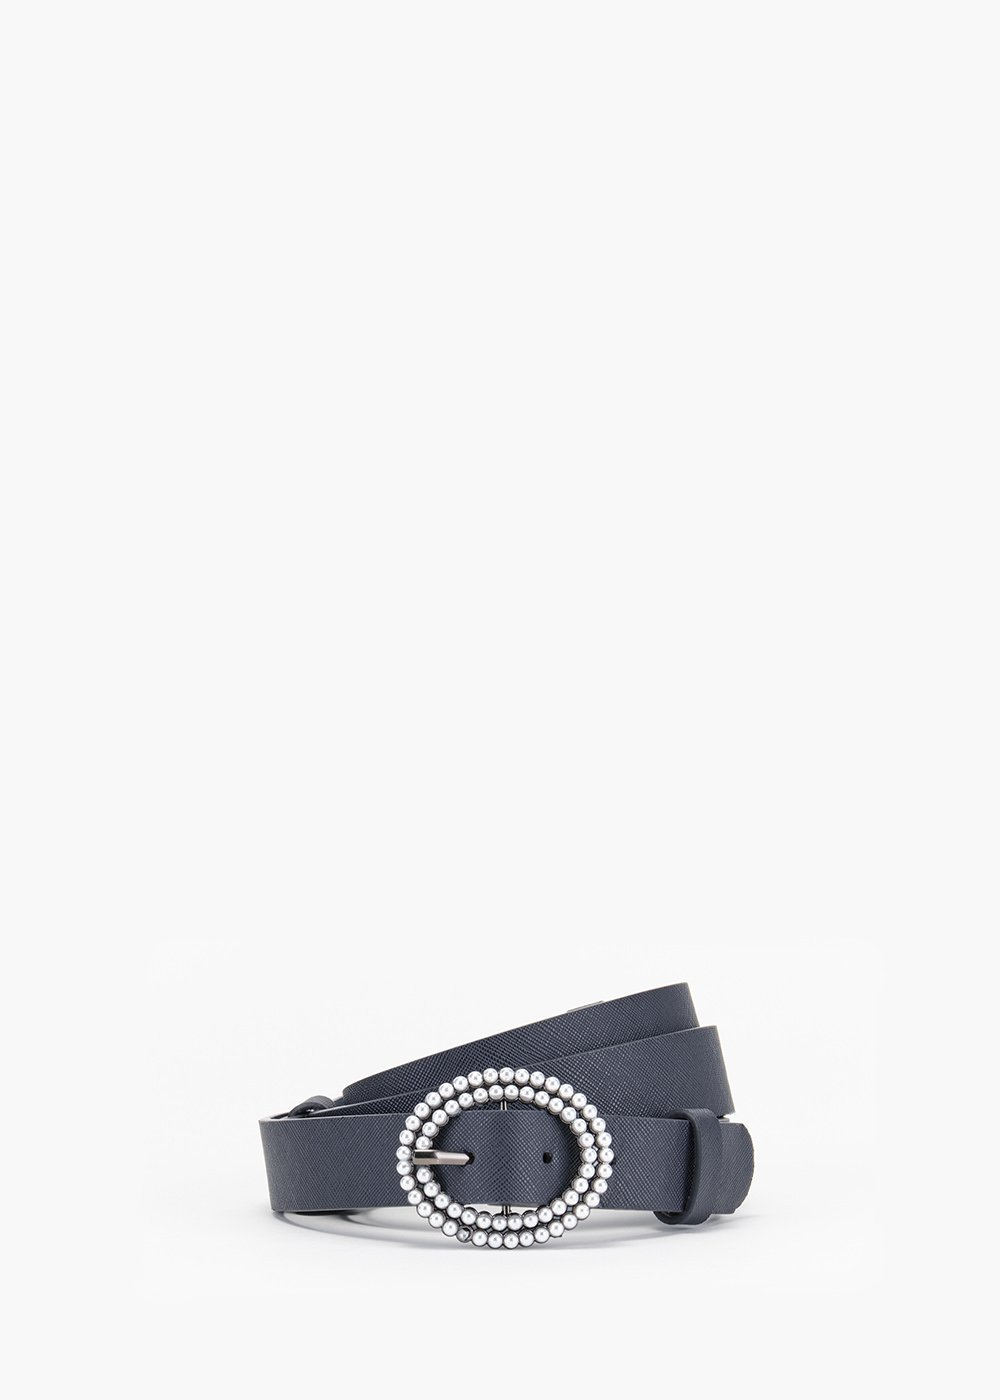 Cher belt in eco leather with micro pearl buckle - Medium Blue - Woman